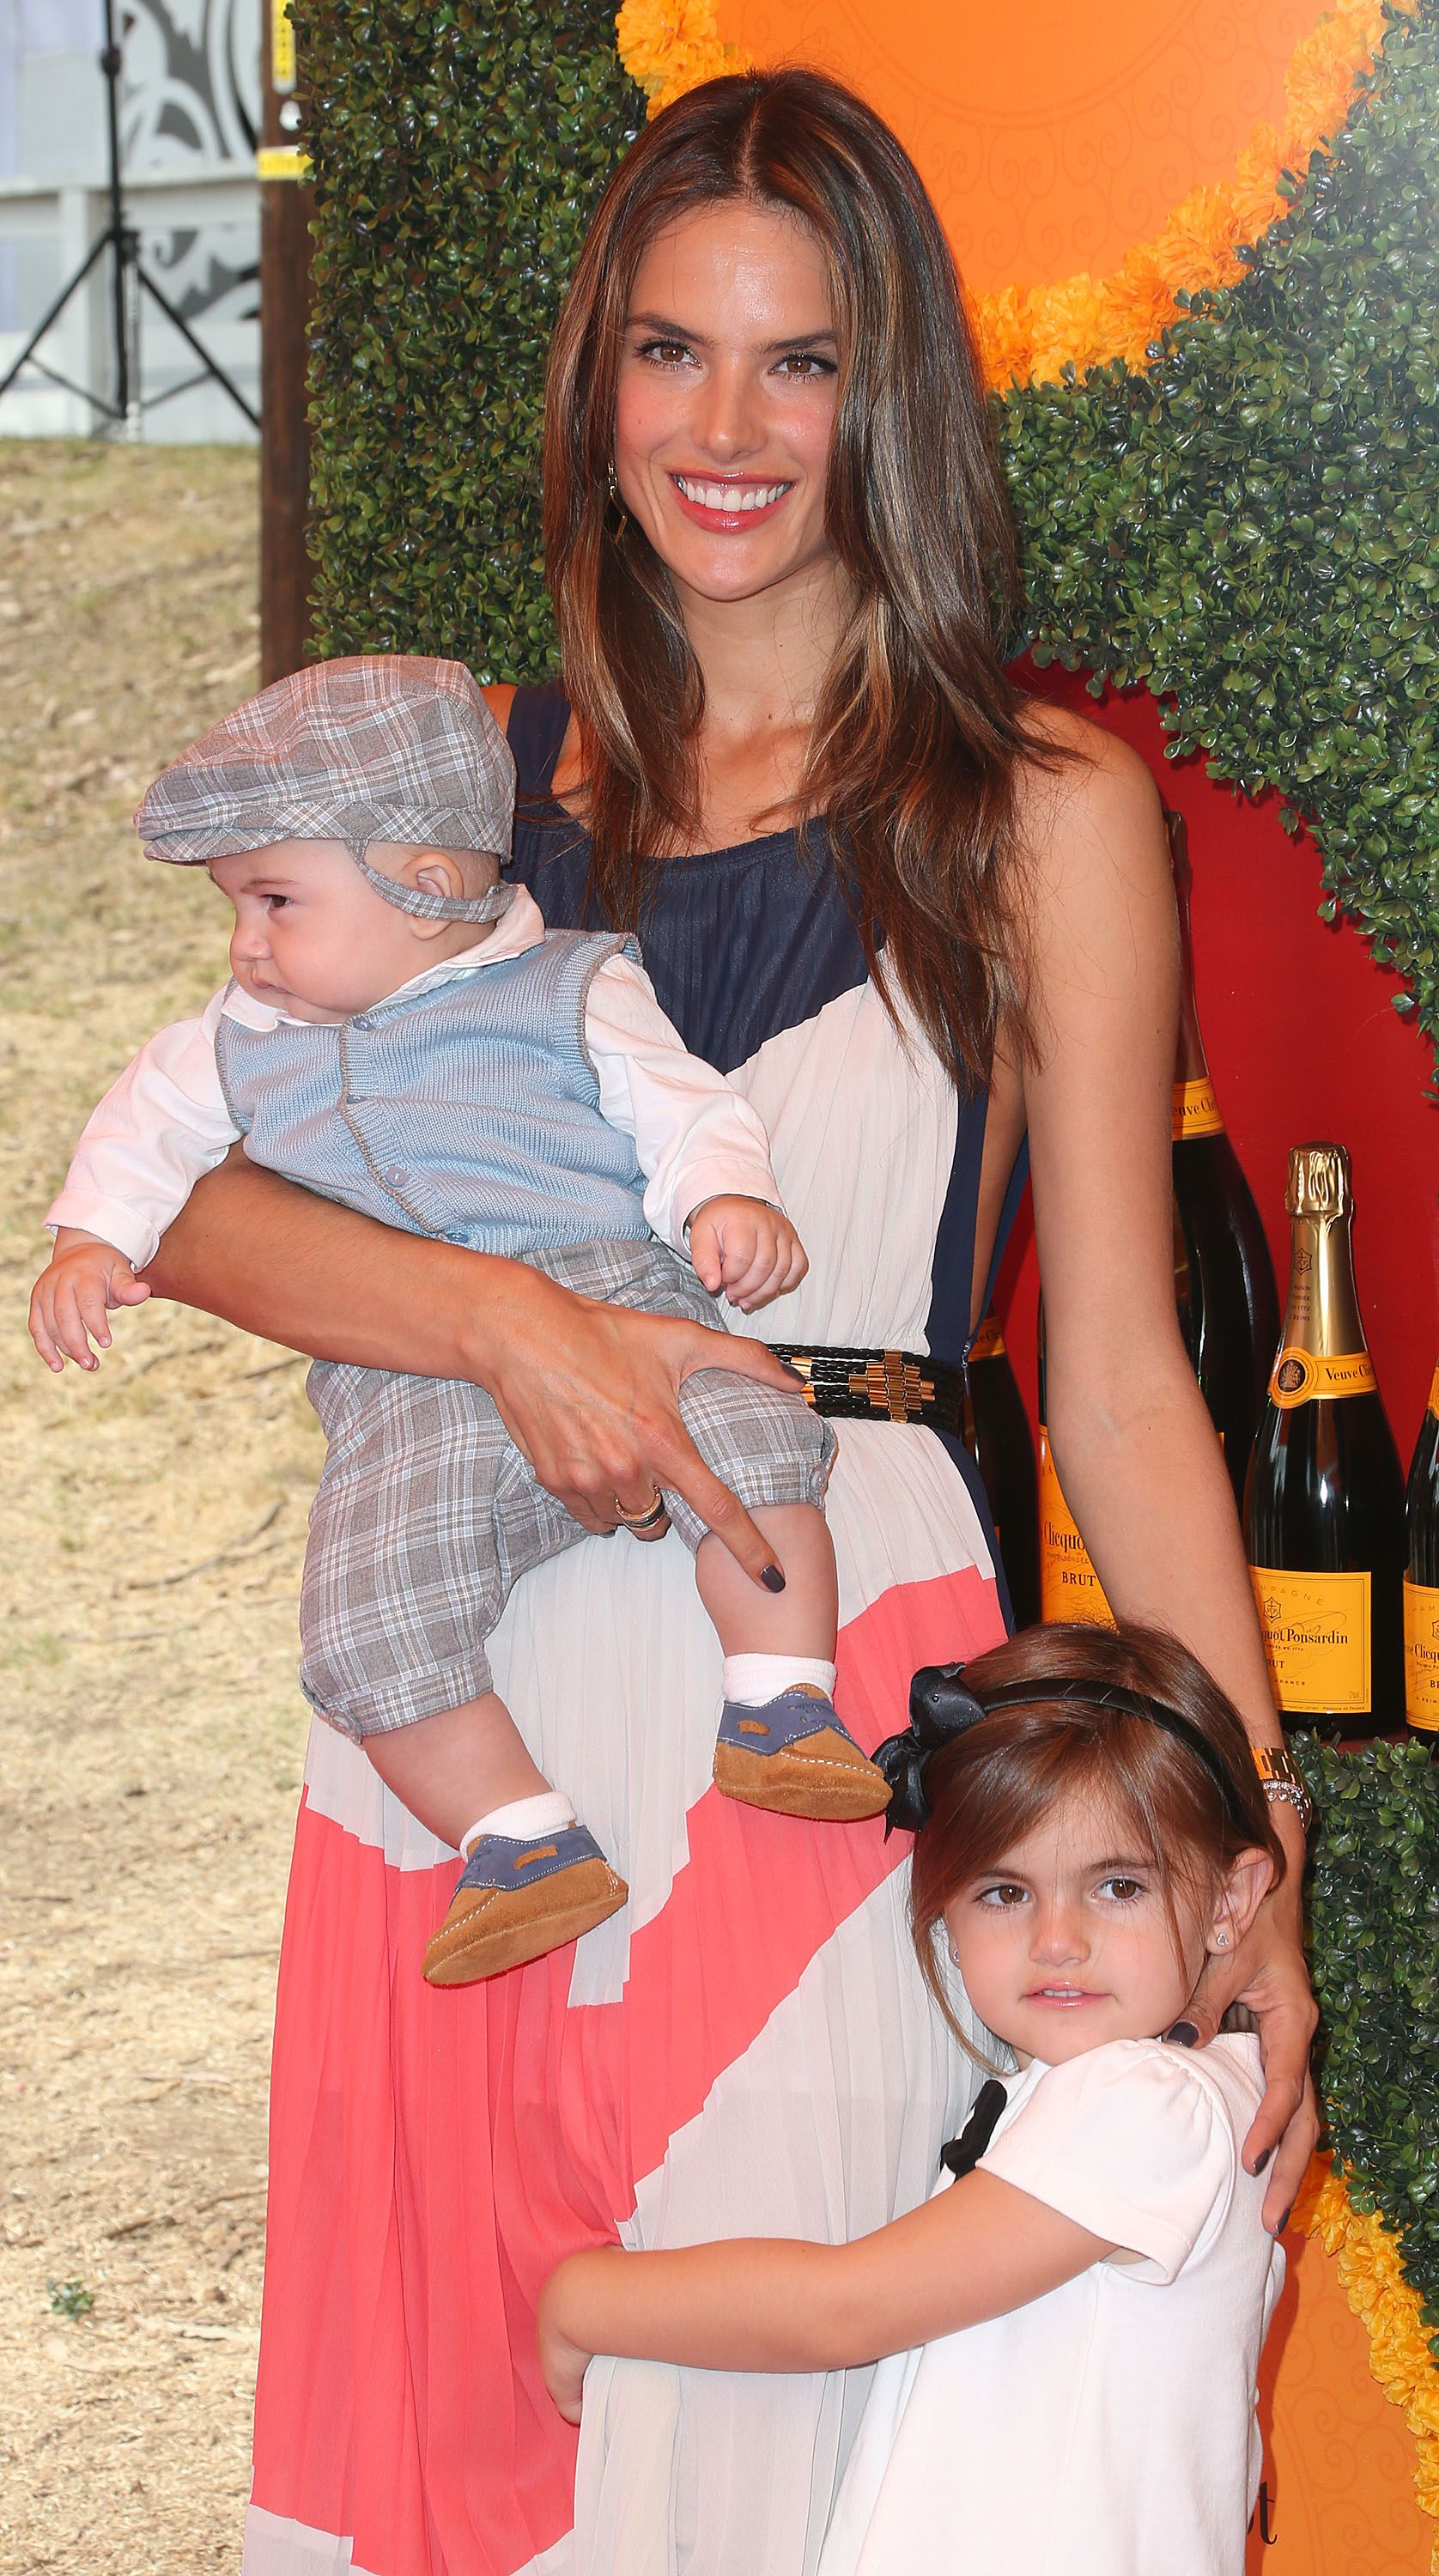 Alessandra Ambrosio shows off her kids on the red carpet